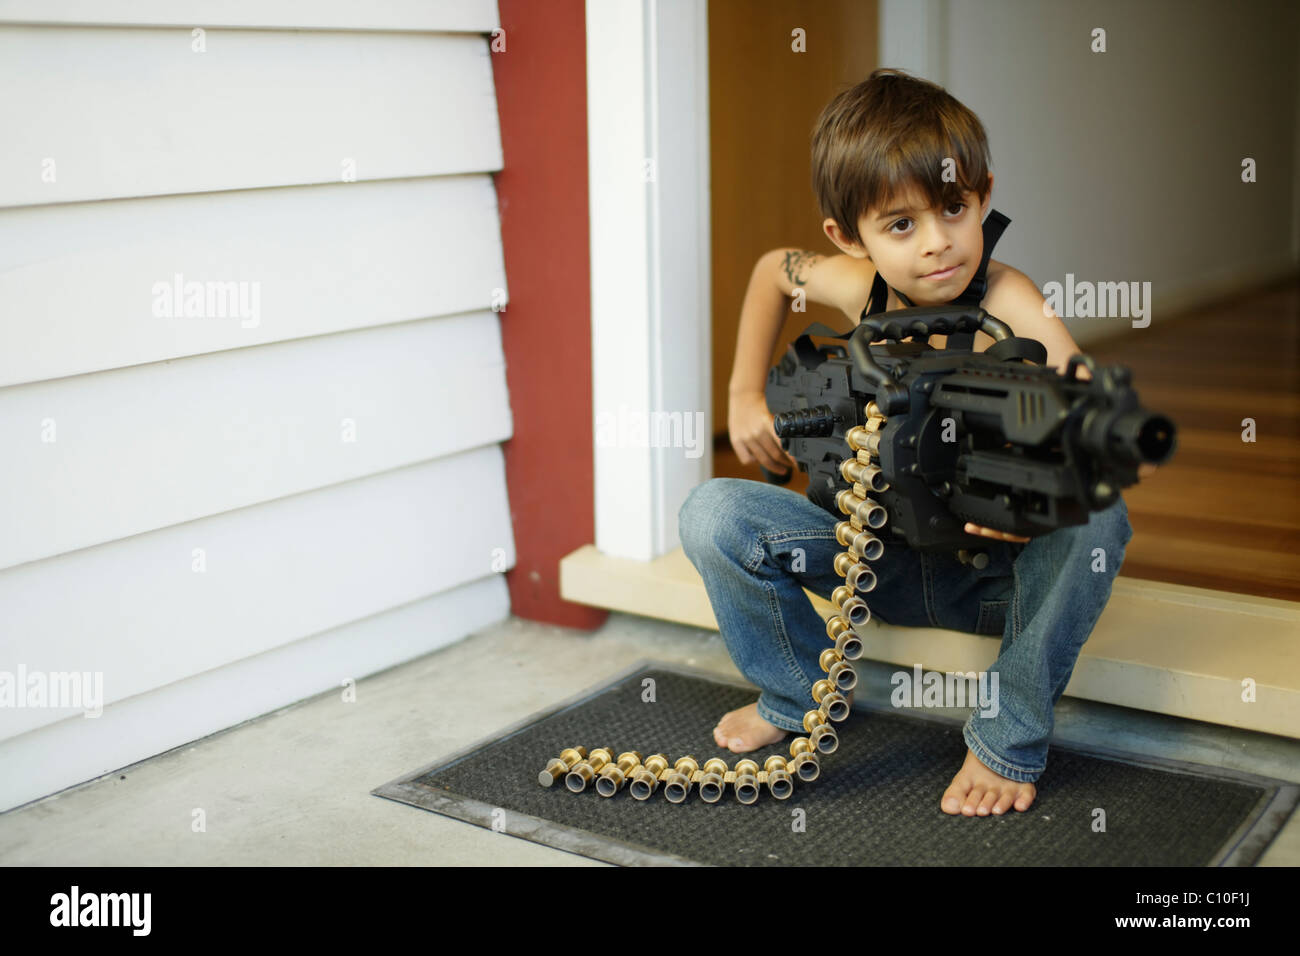 Seven year old boy sits on doorstep holding toy machine gun - Stock Image